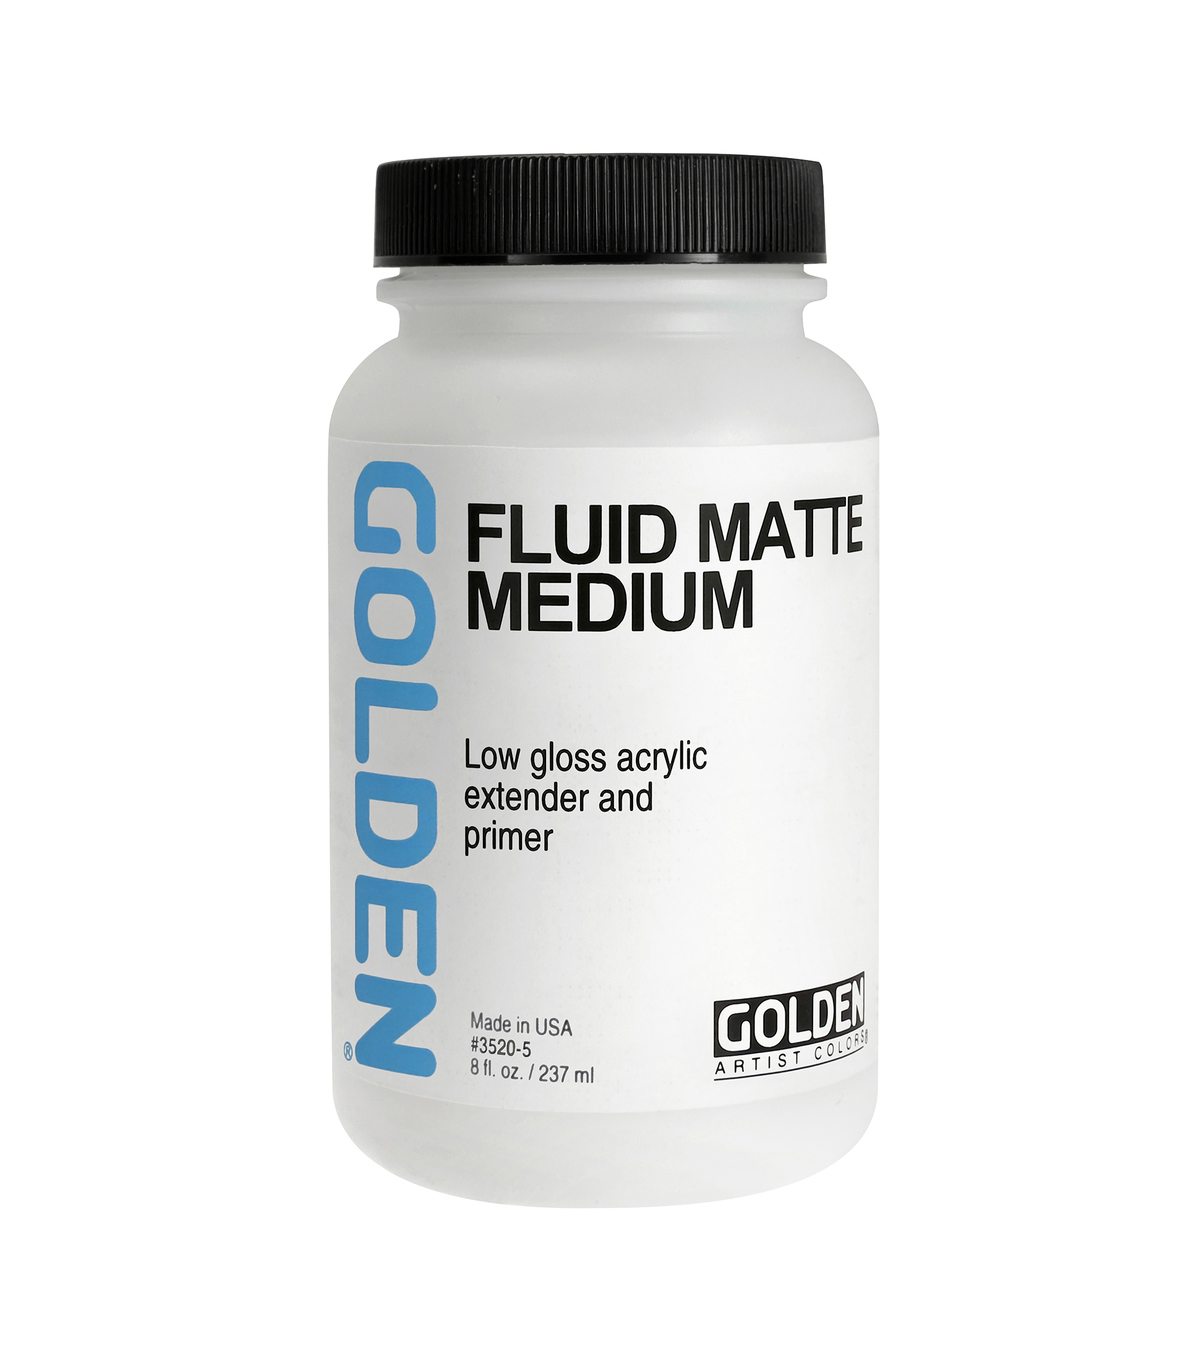 Golden Fluid Matte Medium 8oz.